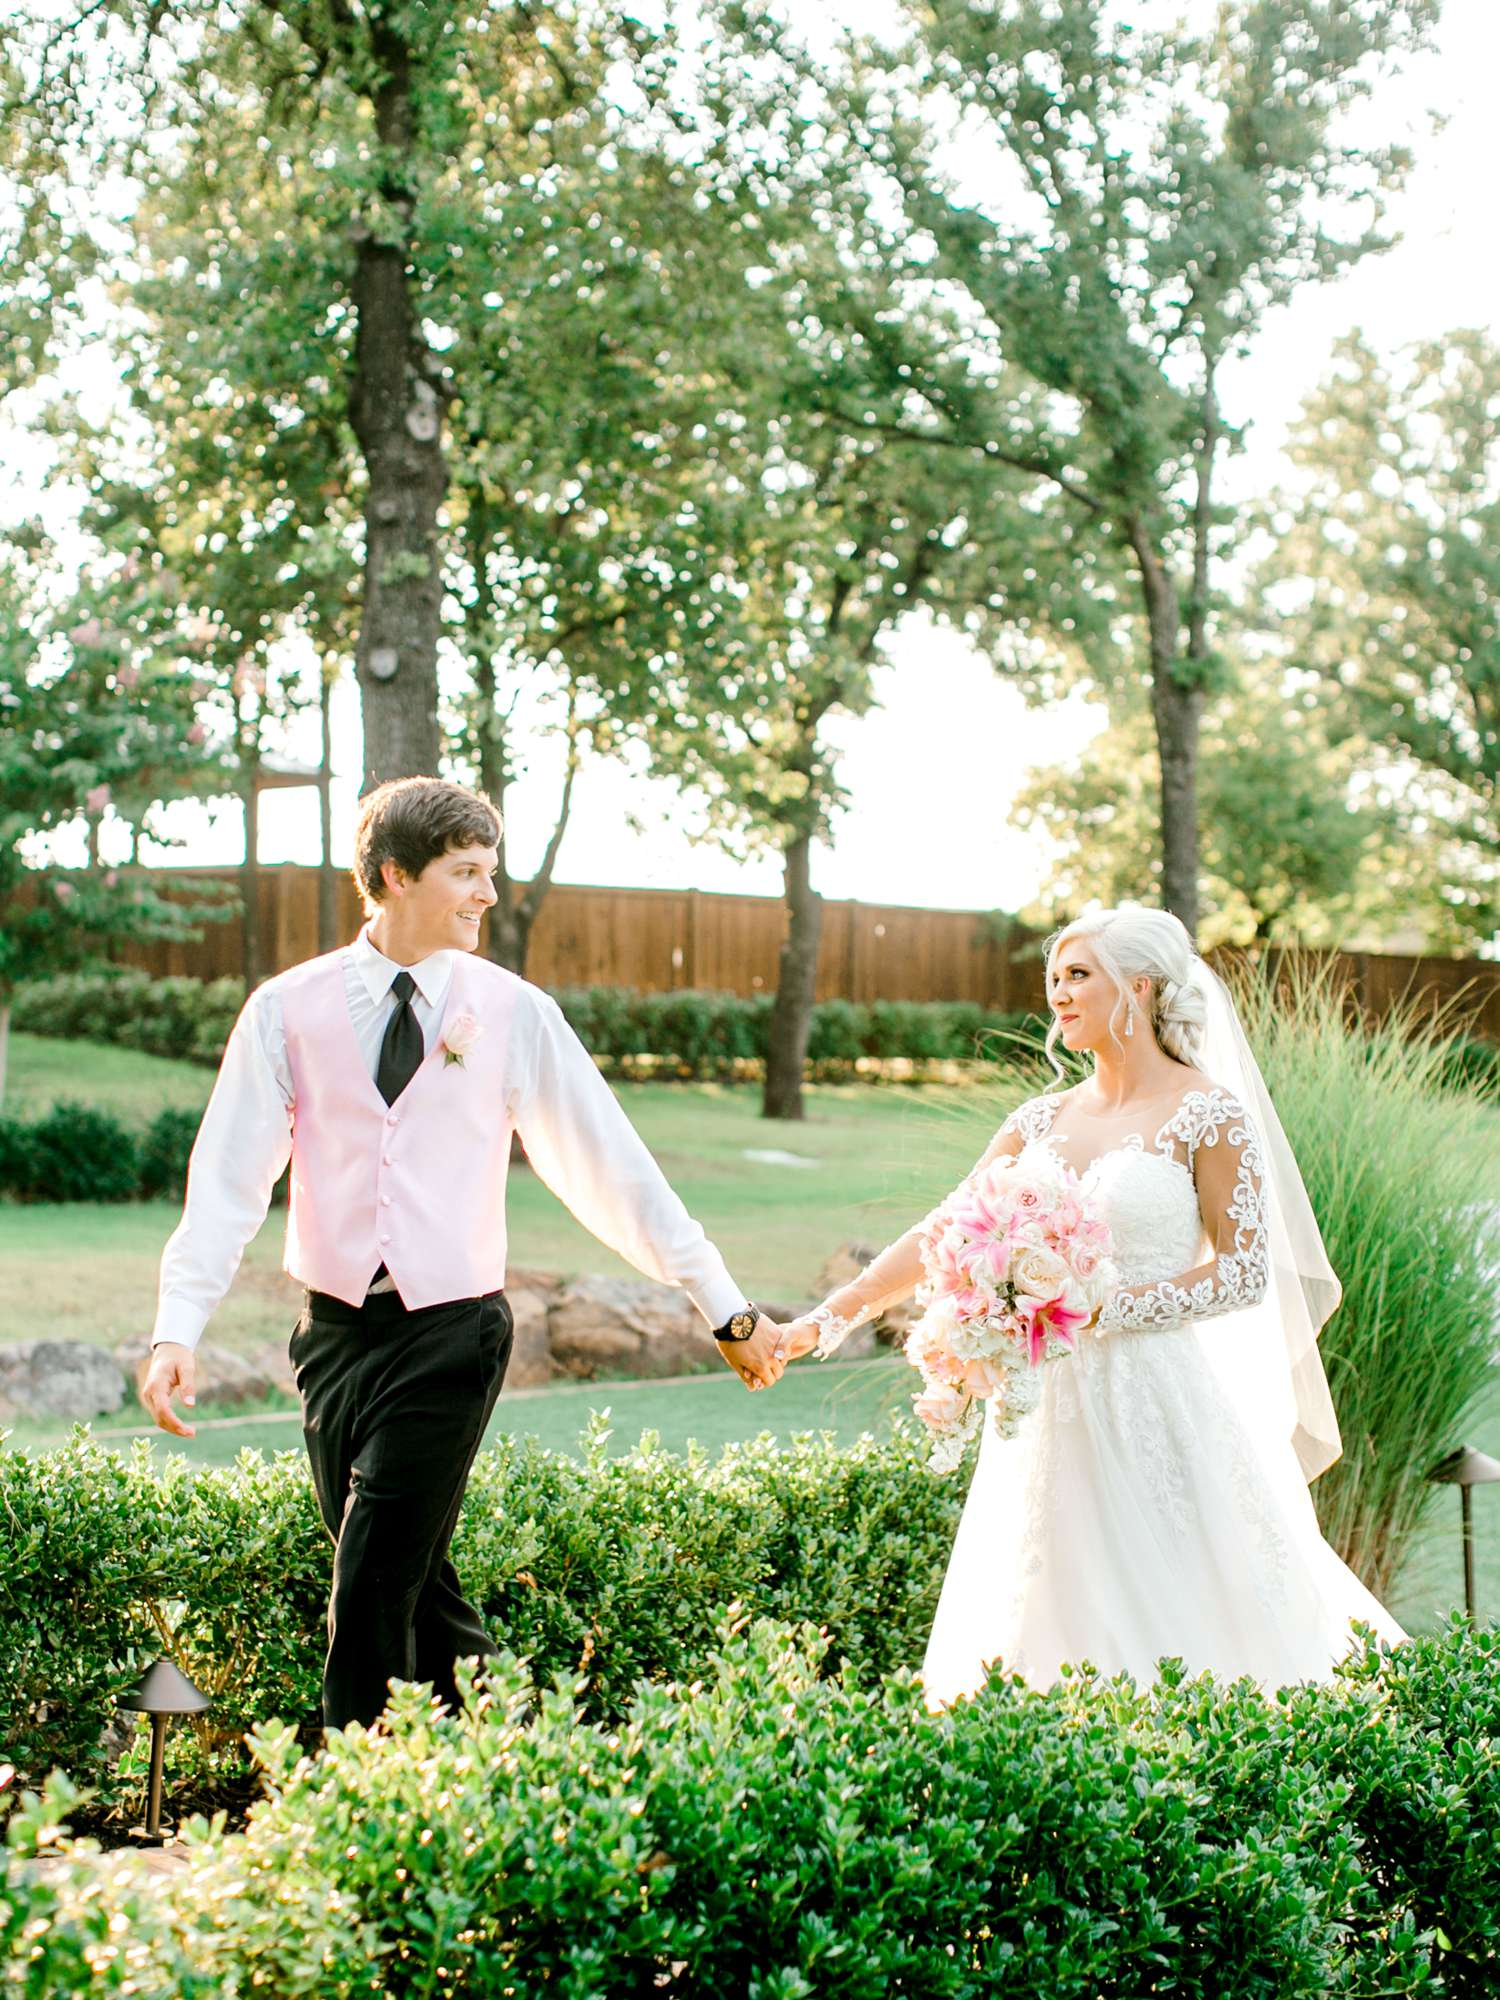 JESSICA+LYLE+NEEL+THE_SPRINGS_EVENTS_WEDDING_OKLAHOMA_ALLEEJ_PHOTOGRAPHER_0087.jpg